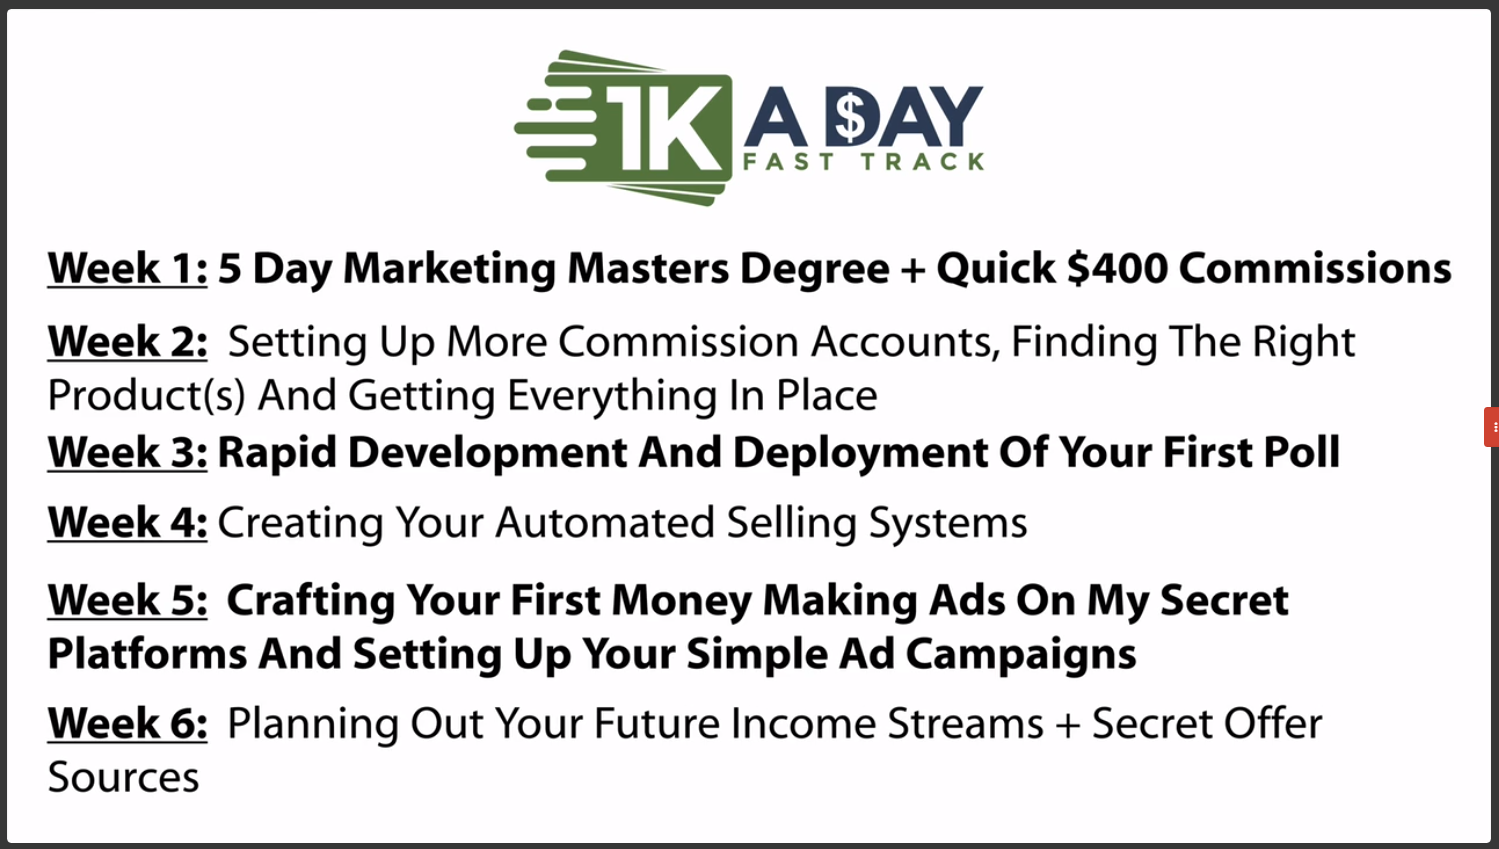 Buy Training Program 1k A Day Fast Track Official